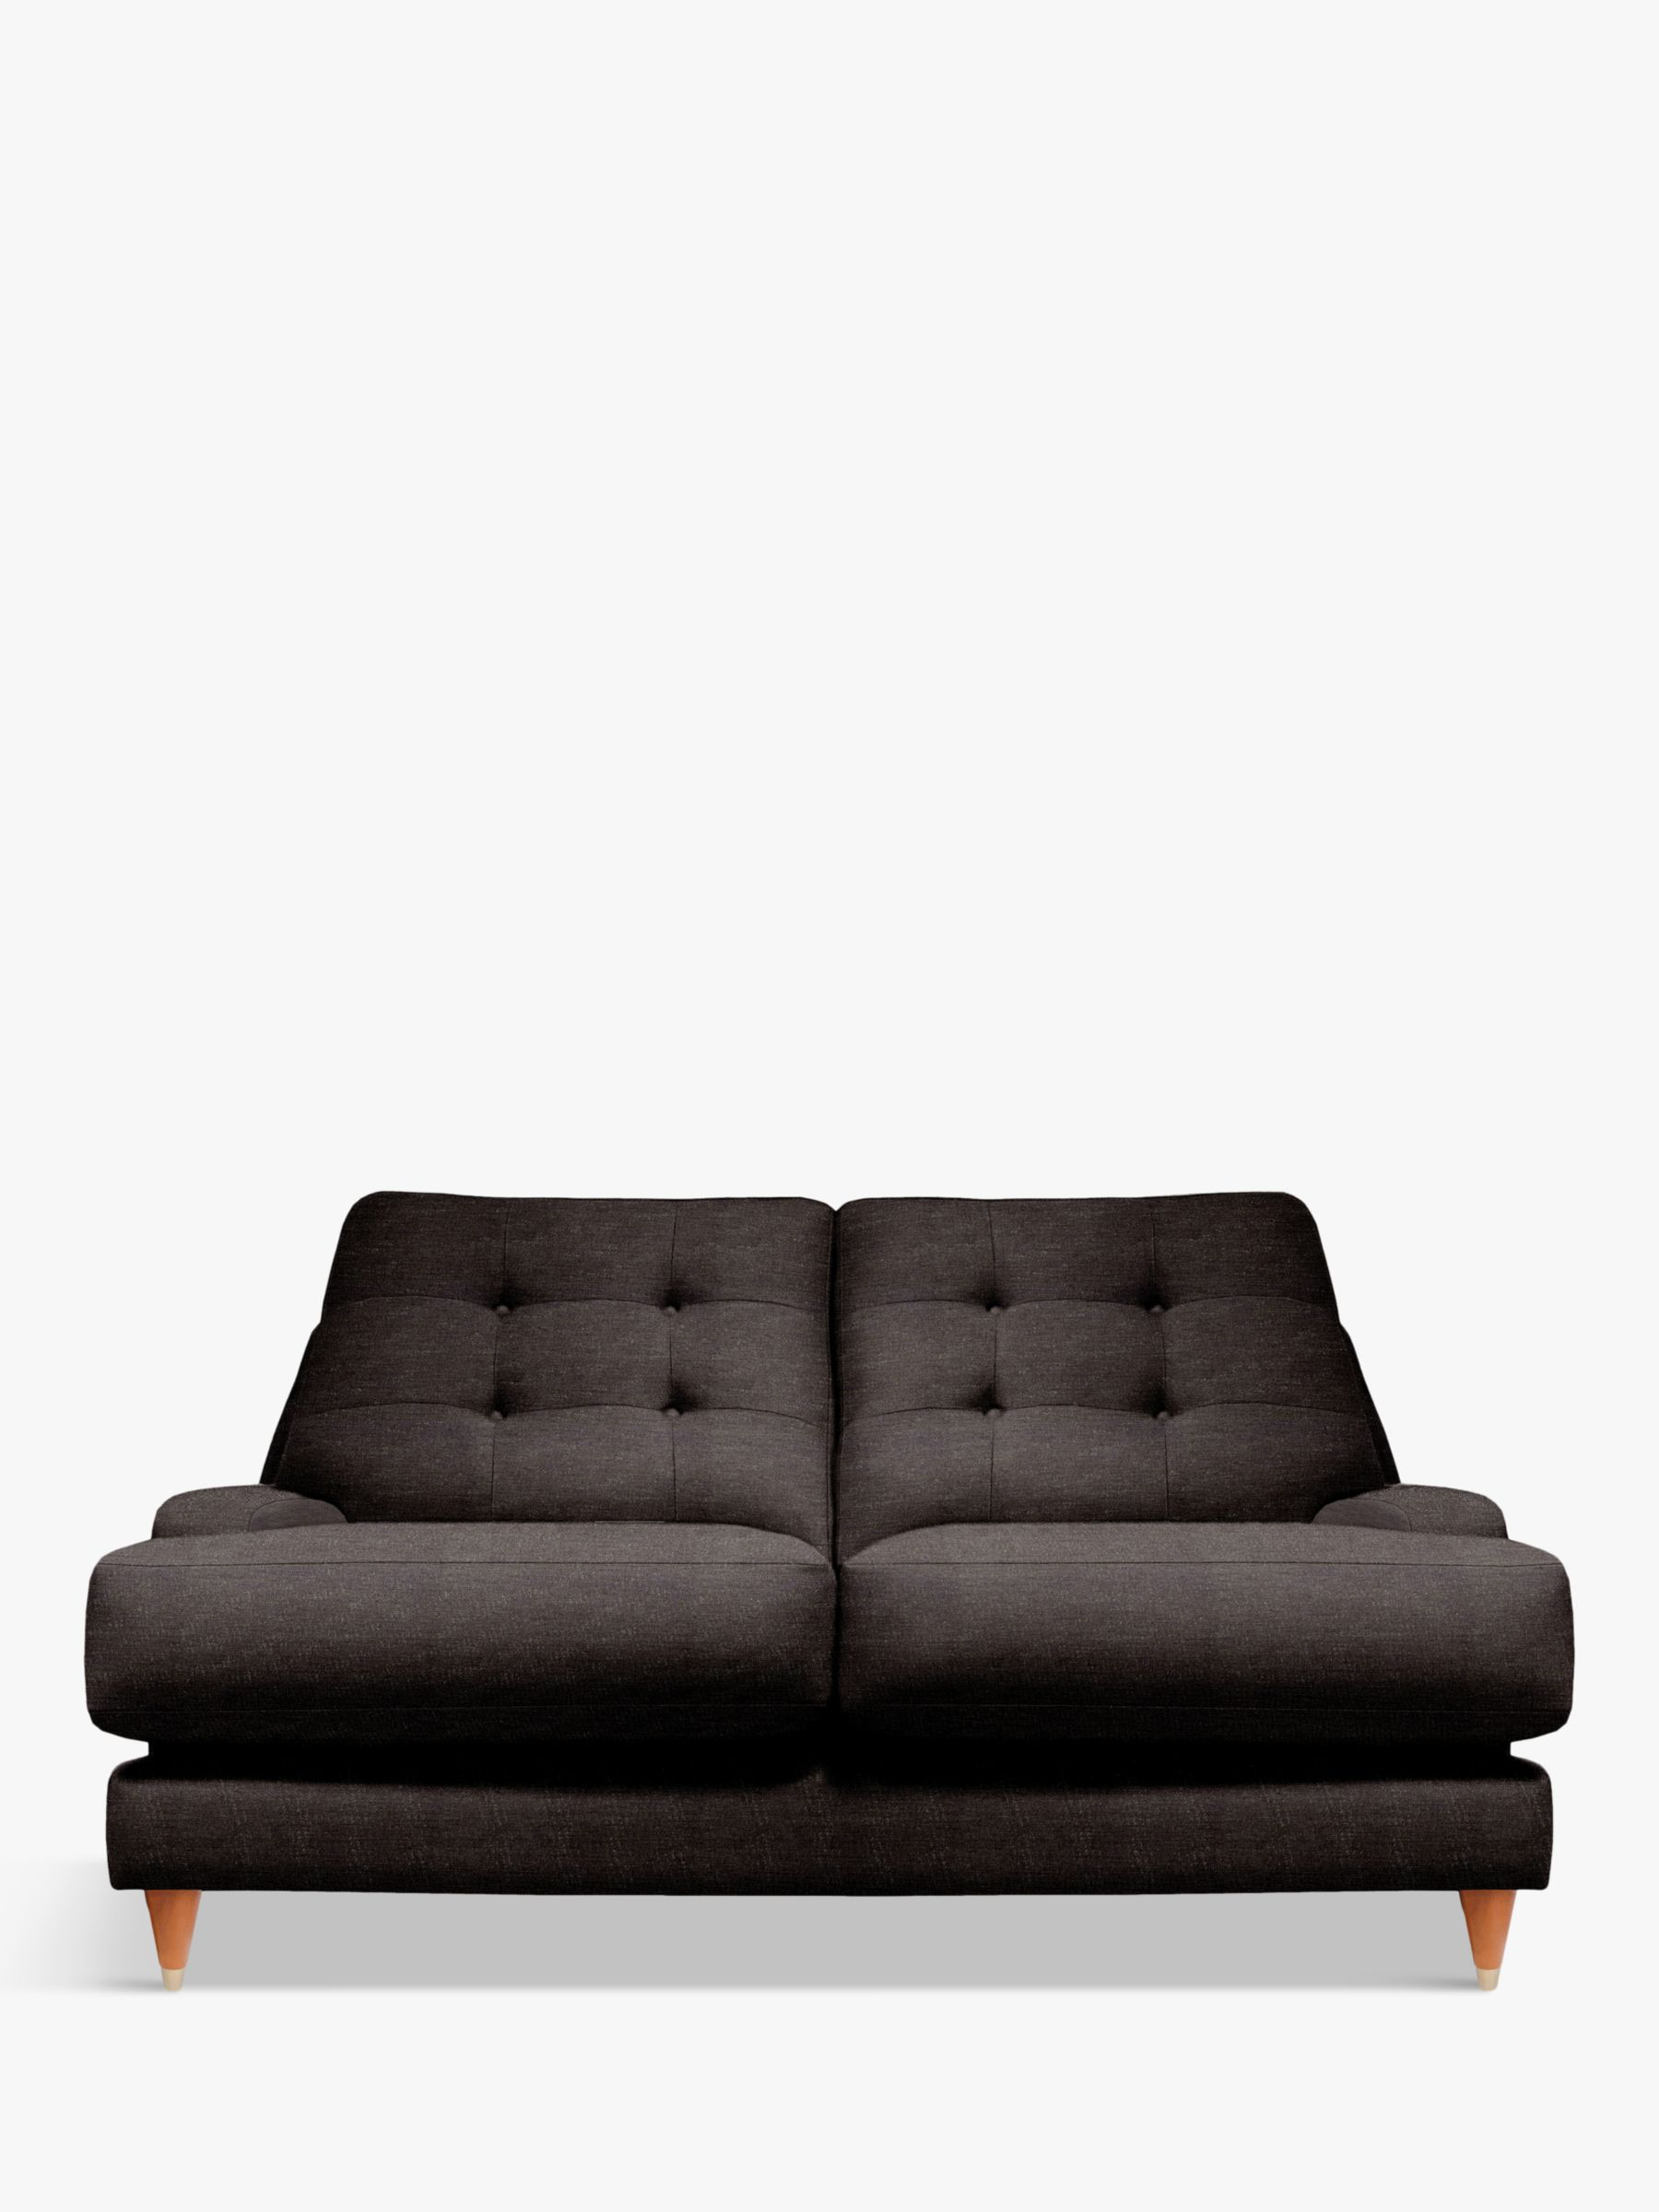 G Plan Vintage G Plan Vintage The Fifty Seven Small 2 Seater Sofa